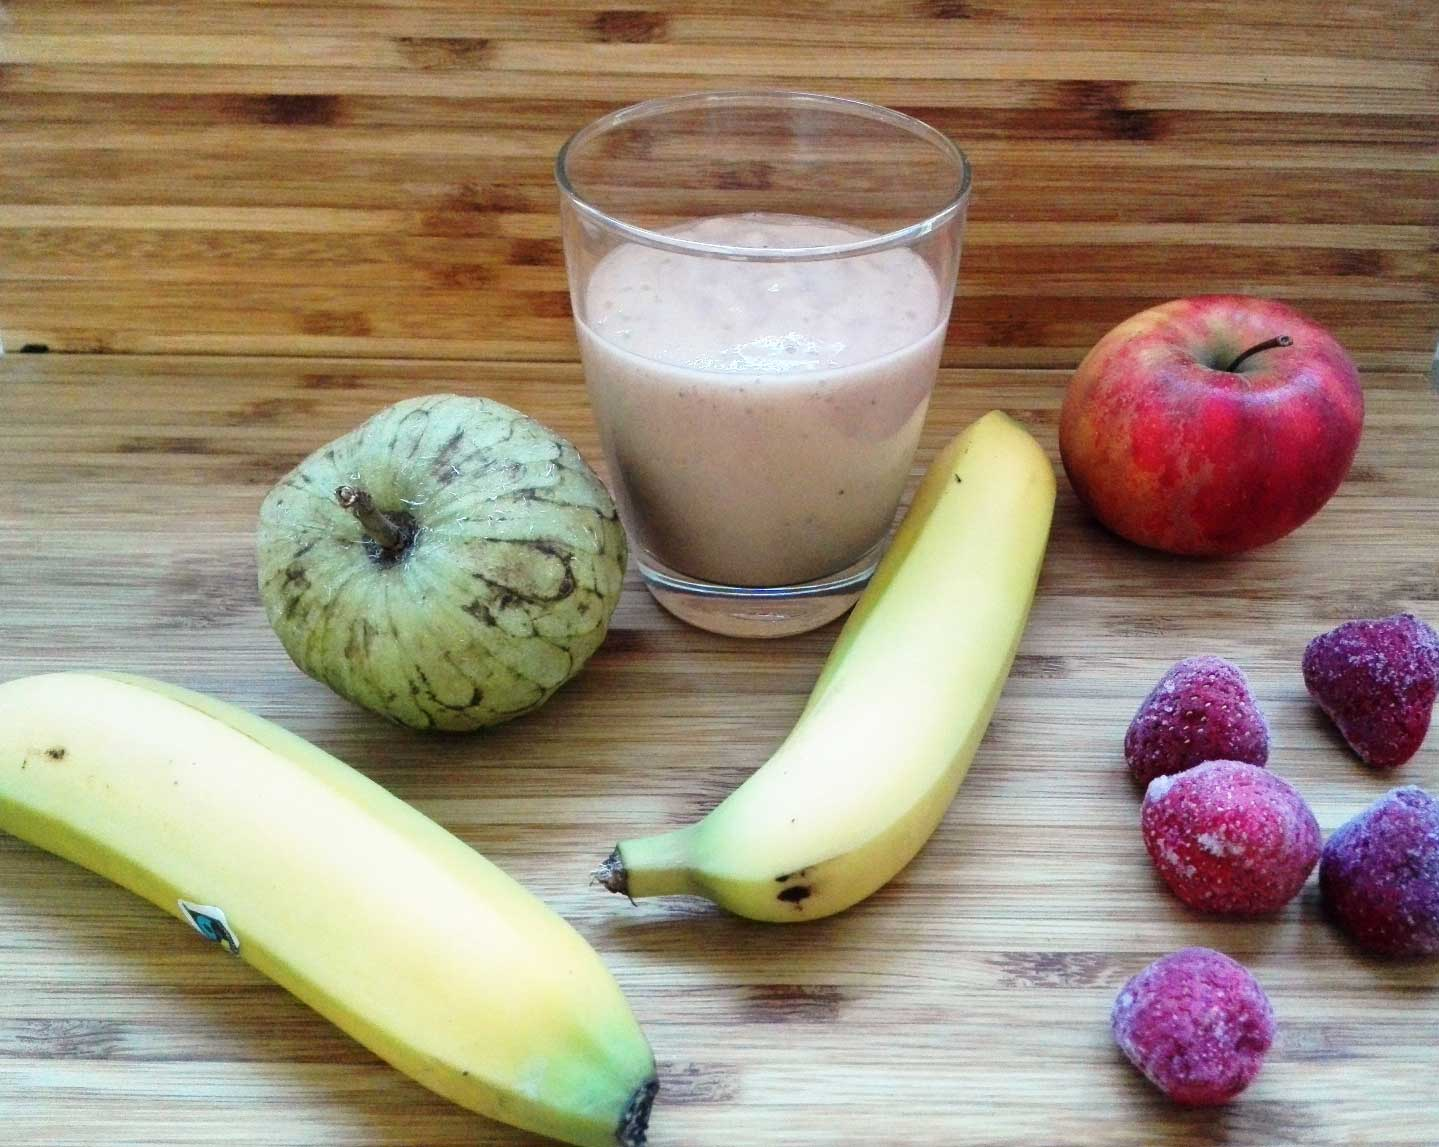 Check out this delicious plant-based cherimoya smoothie packed with vitamin C, antioxidants, all 8 essential amino acids and vitamins. Get the recipe via lillaliptak.com and create the life you want #smoothies #smoothierecipe #smoothierecipeshealthy #plantbasedrecipes